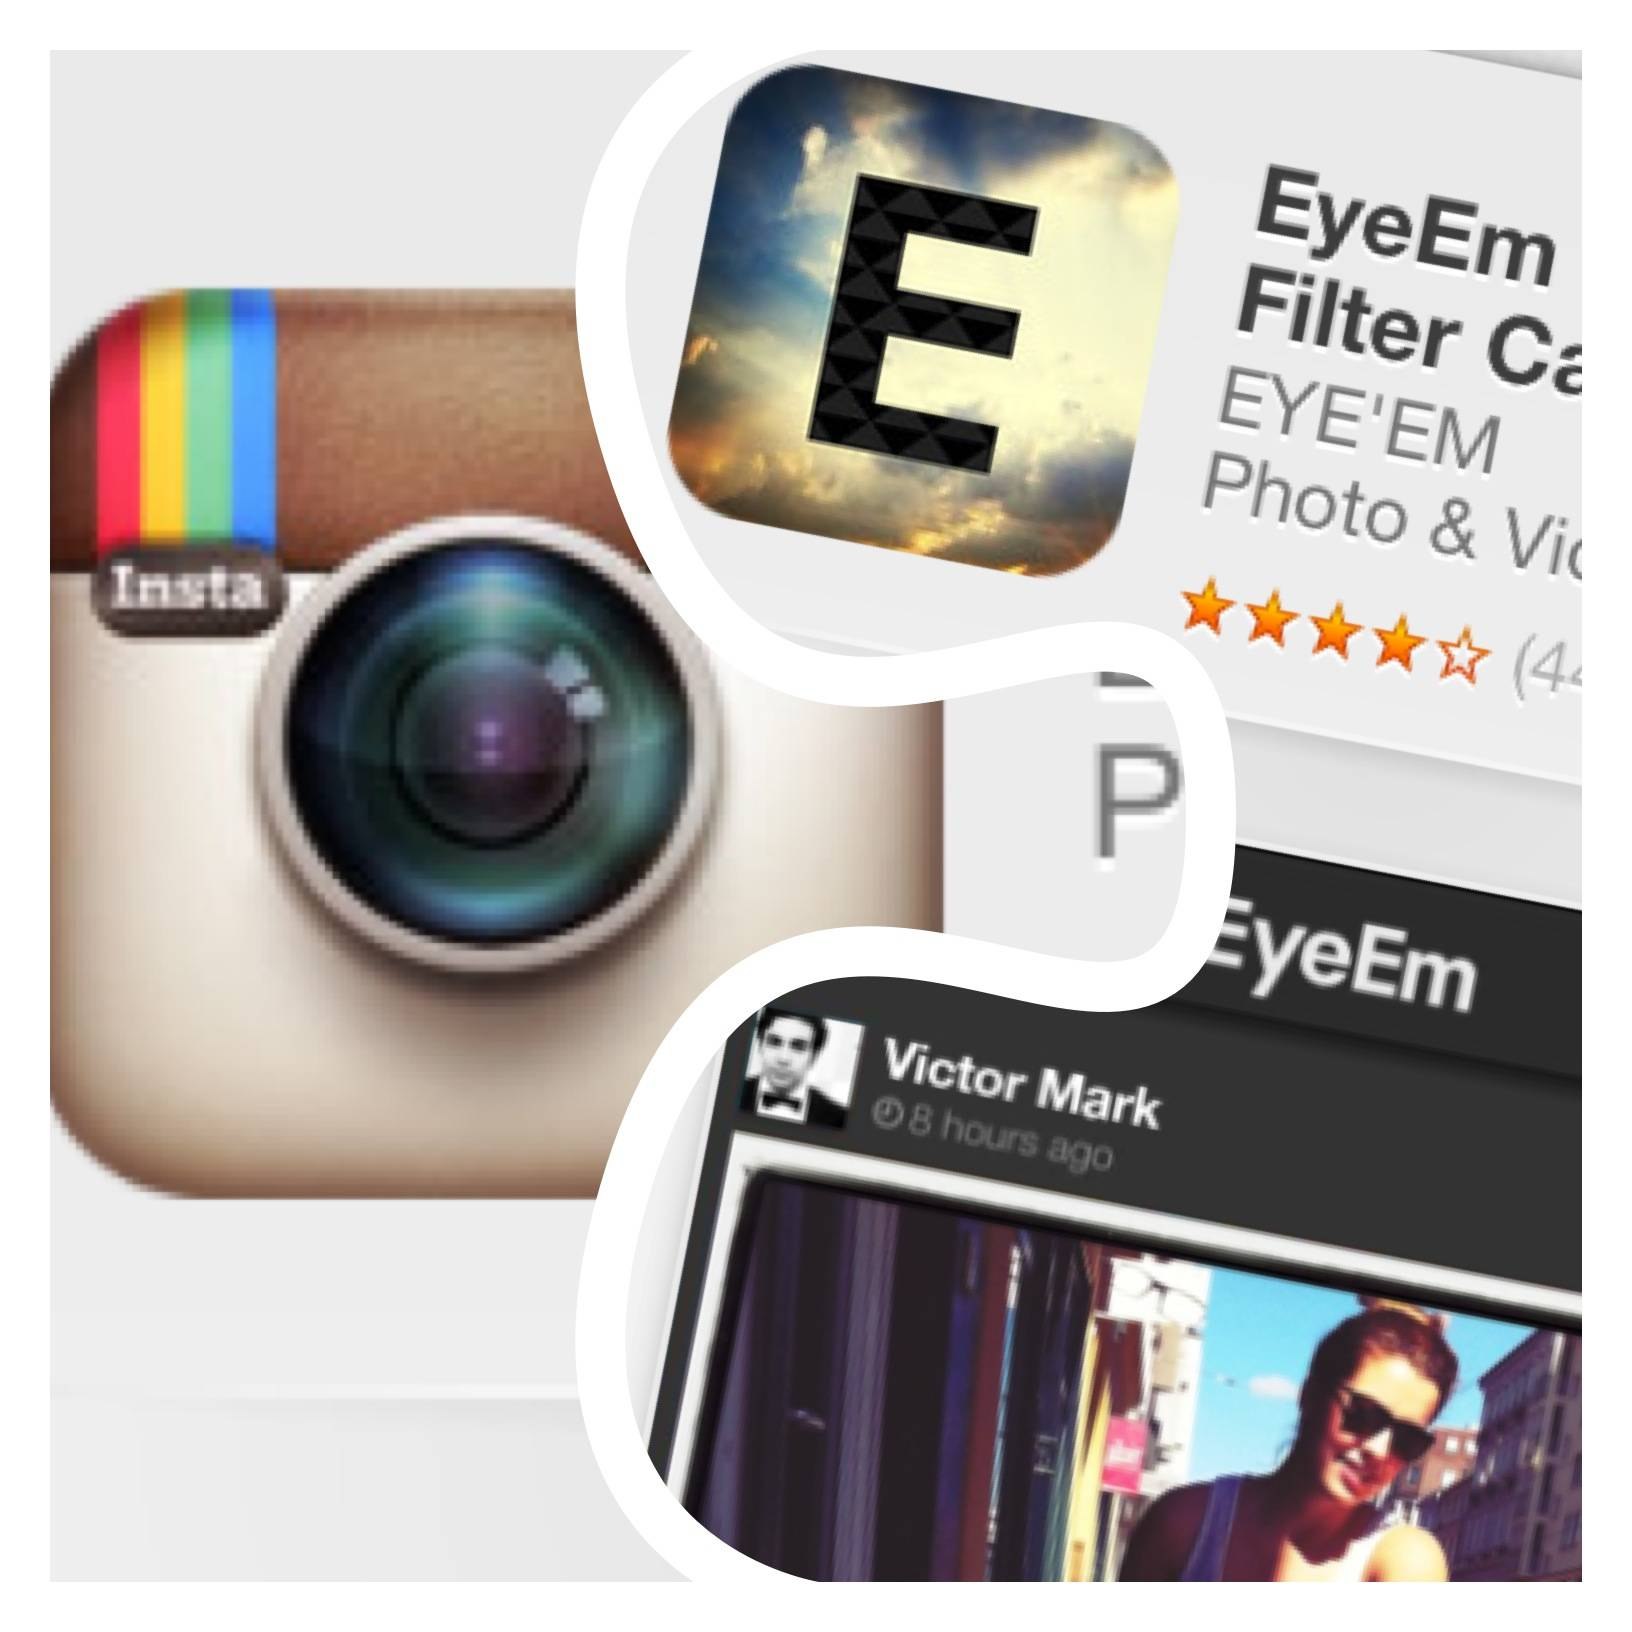 Comparison Between Terms of Services of Instagram and Eye Em Apps